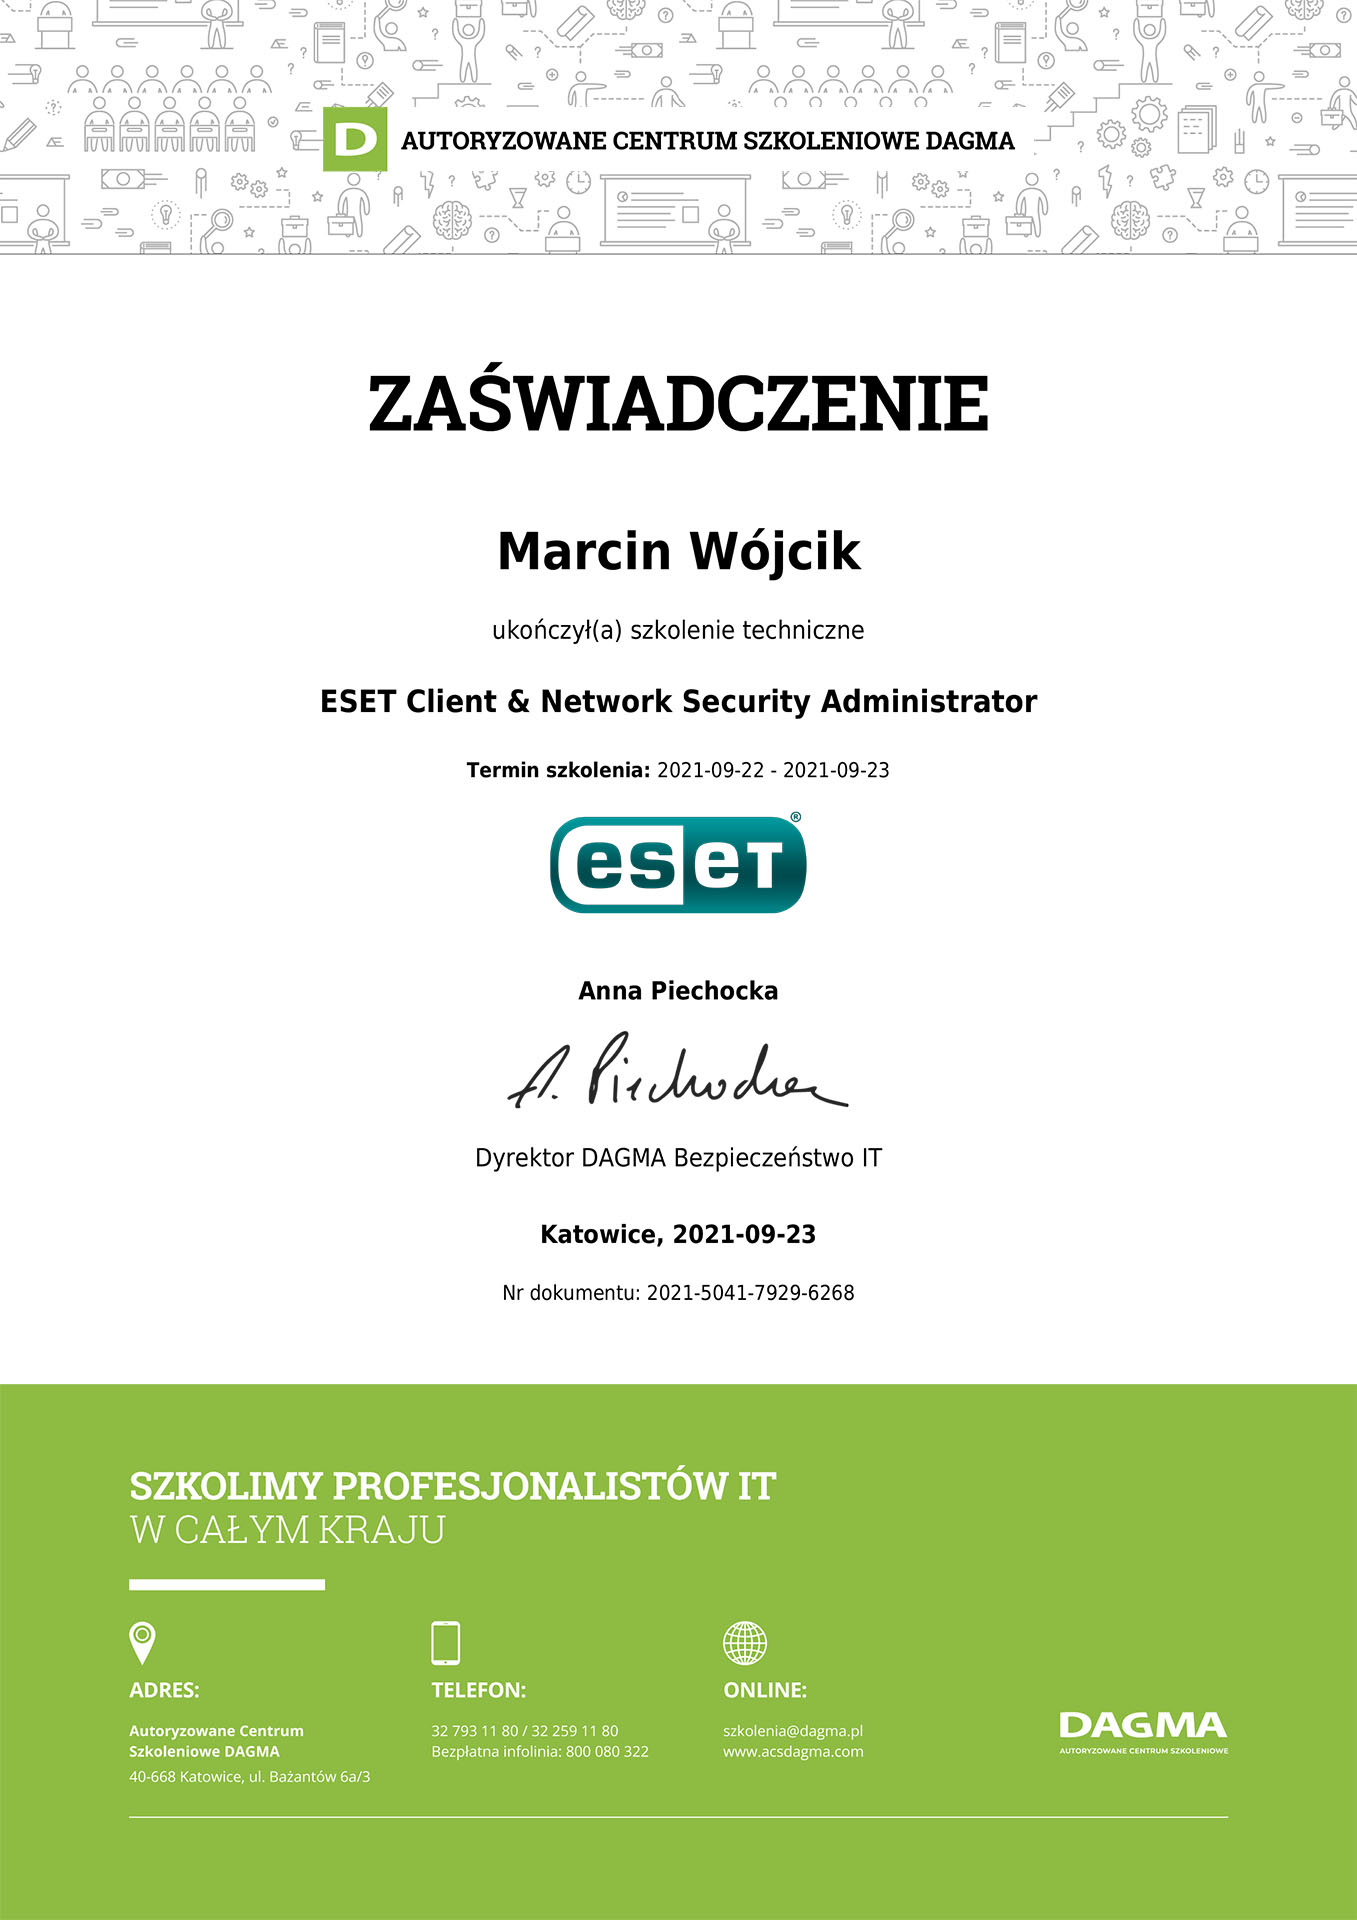 ESET Client & Network Security Administrator